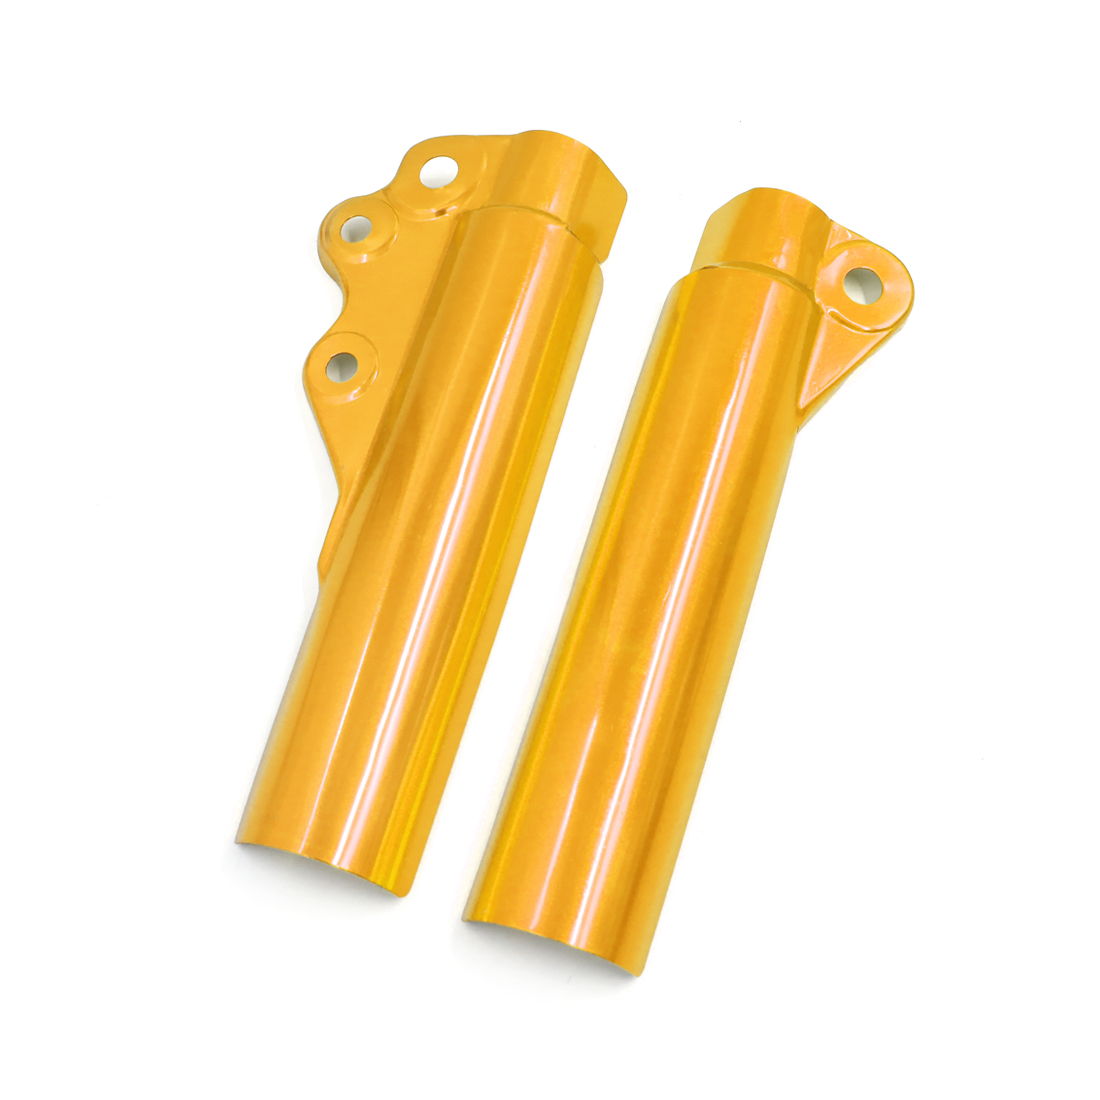 Pair Gold Tone Aluminum Alloy Motorcycle Front Shock Absorber Cover Protector